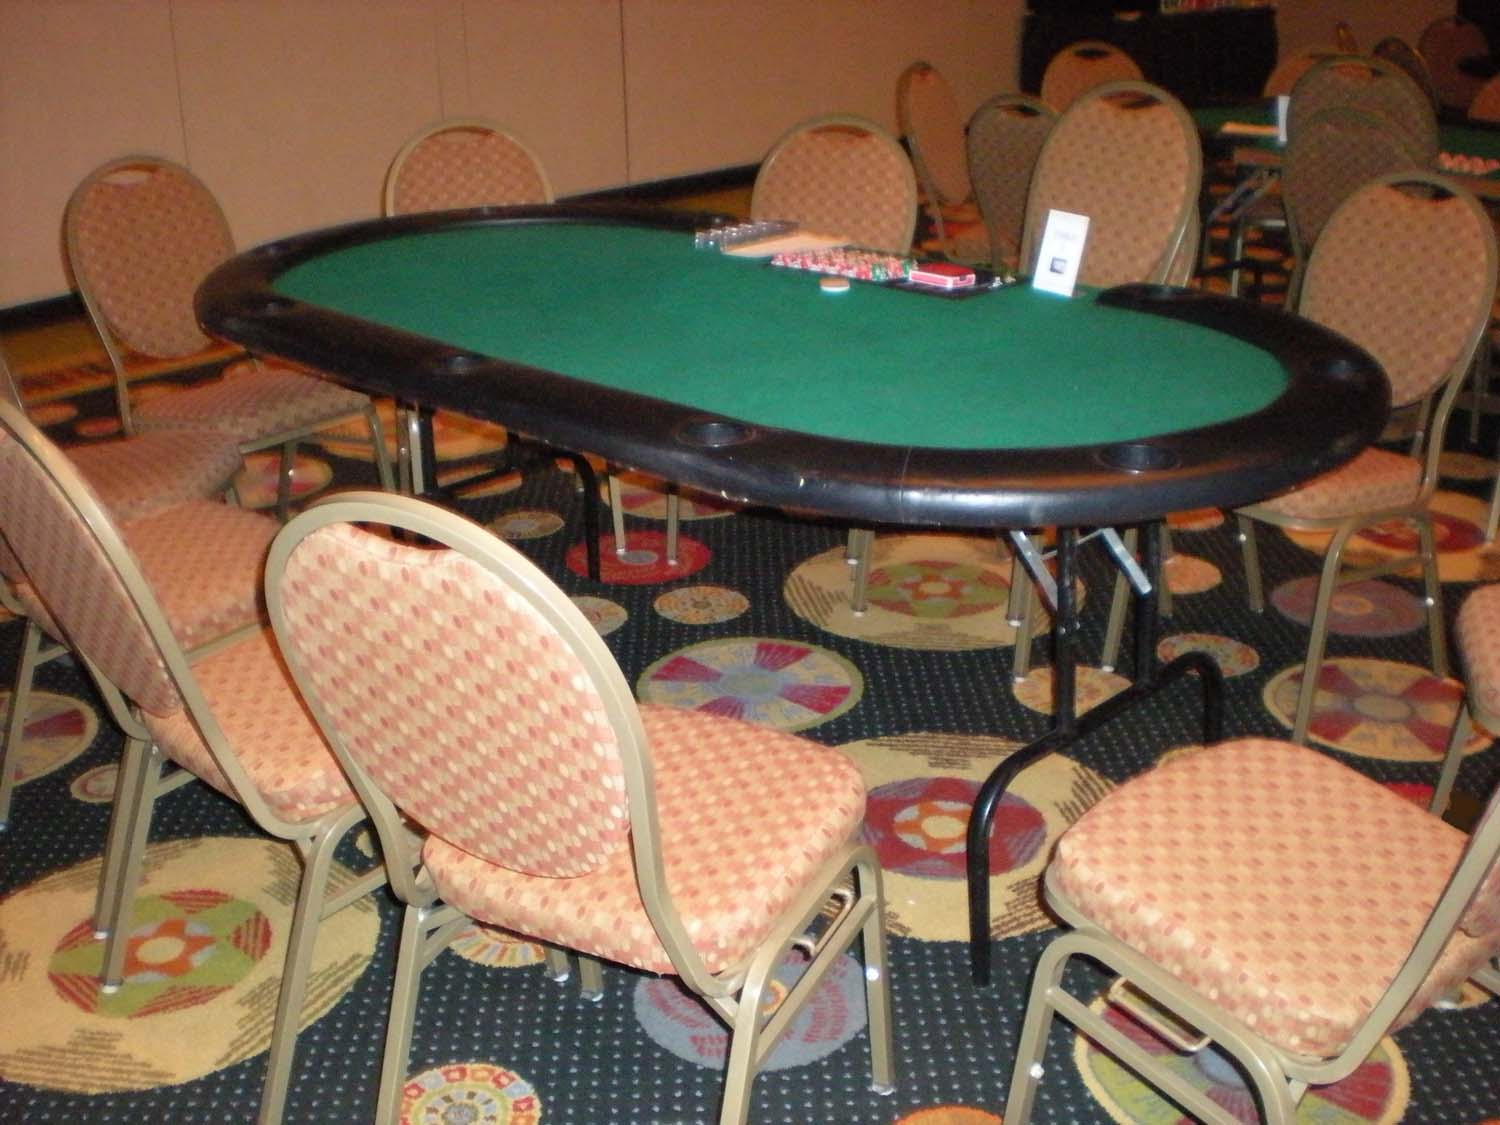 Texas Hold'em Poker is one of the most popular casino party games for casino night events in Tucson, AZ